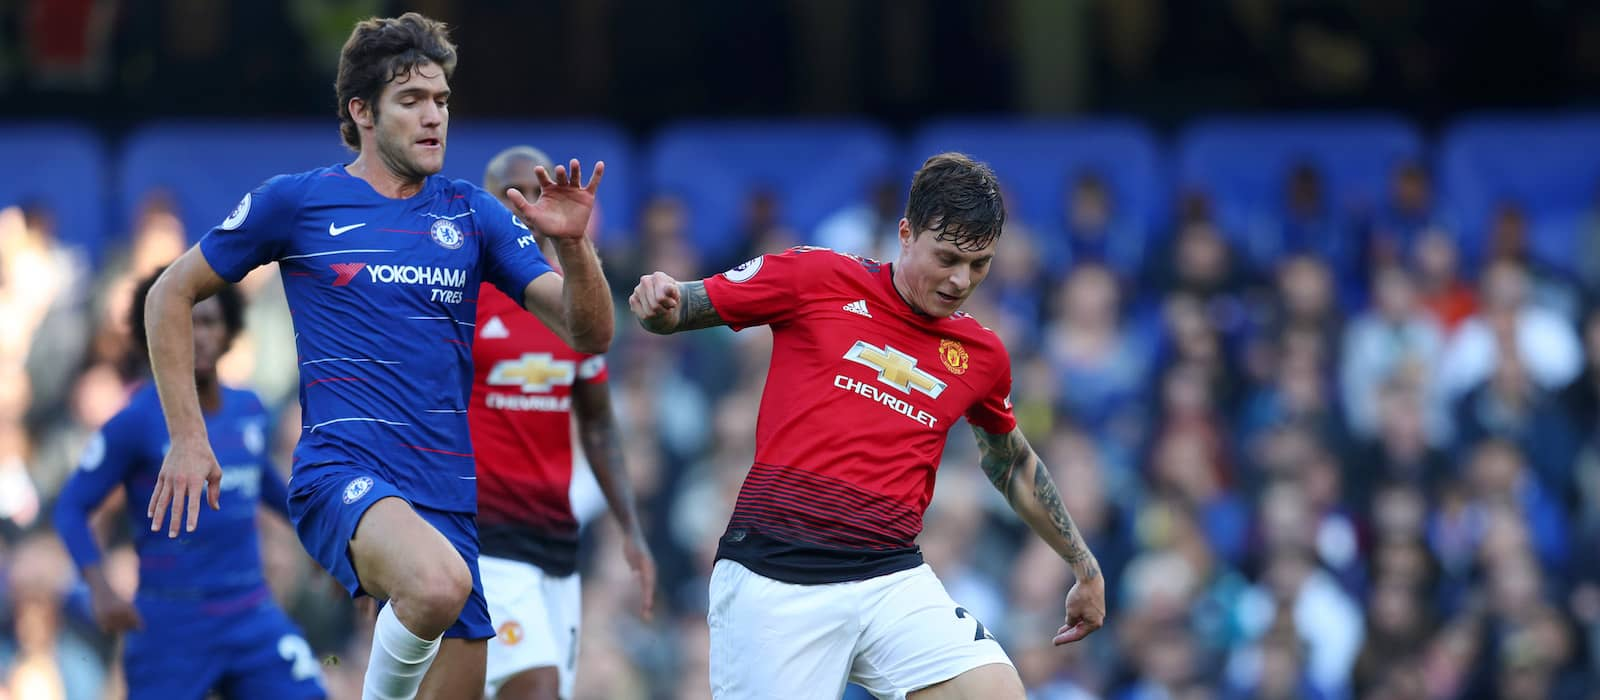 Victor Lindelof wins Manchester United's 'Player of the Month' award for November